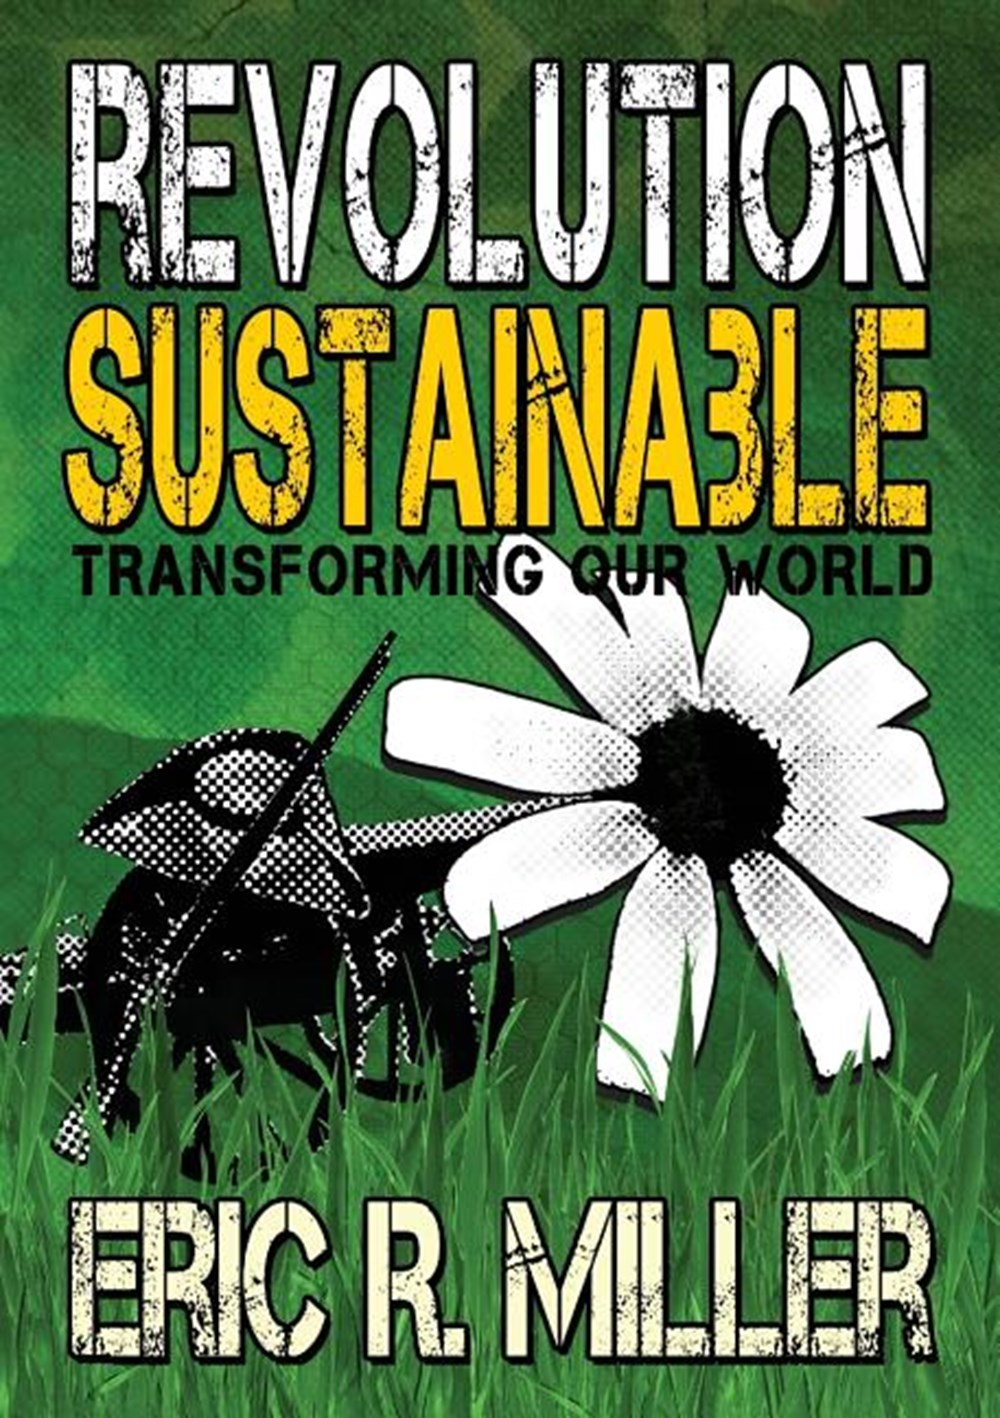 Revolution Sustainable Transforming Our World